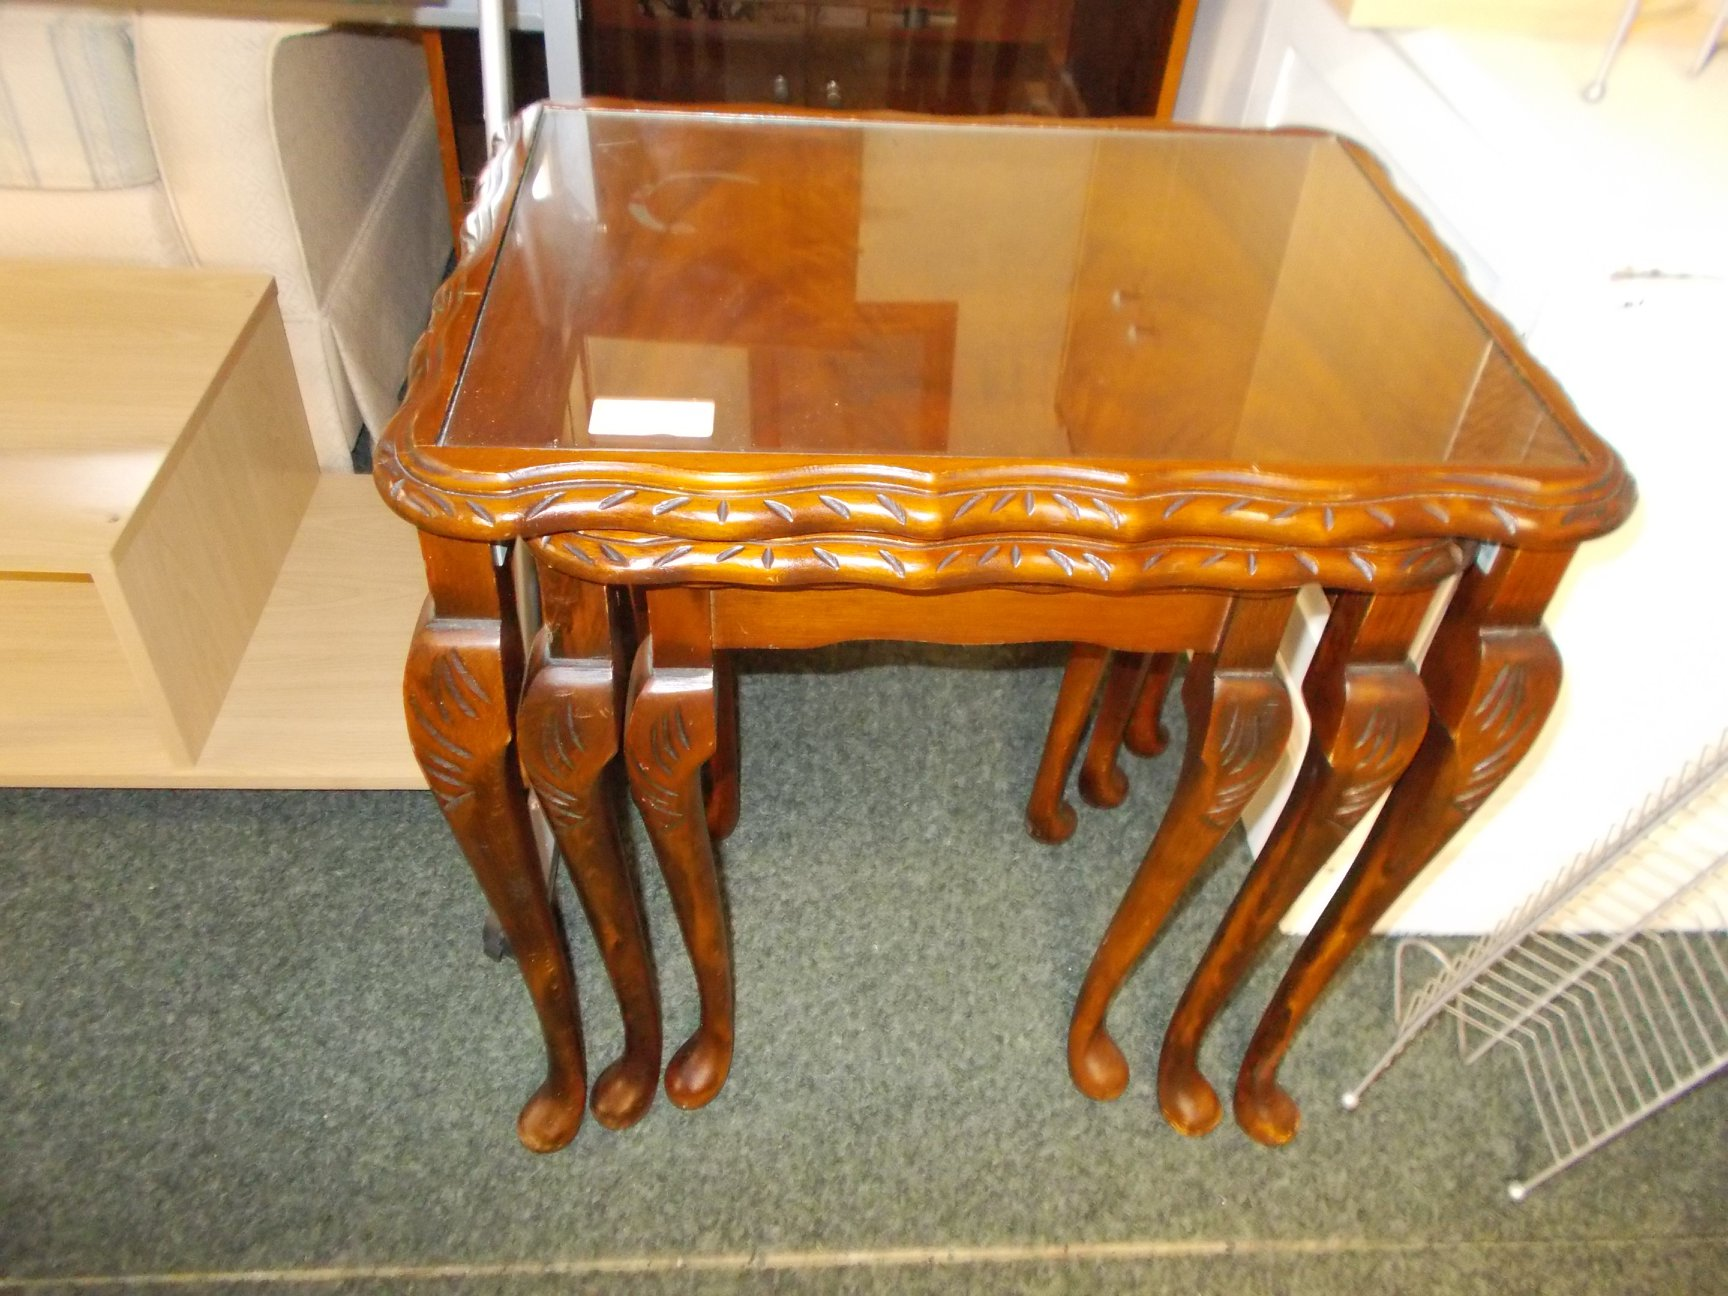 NEST OF 3 TABLES £25